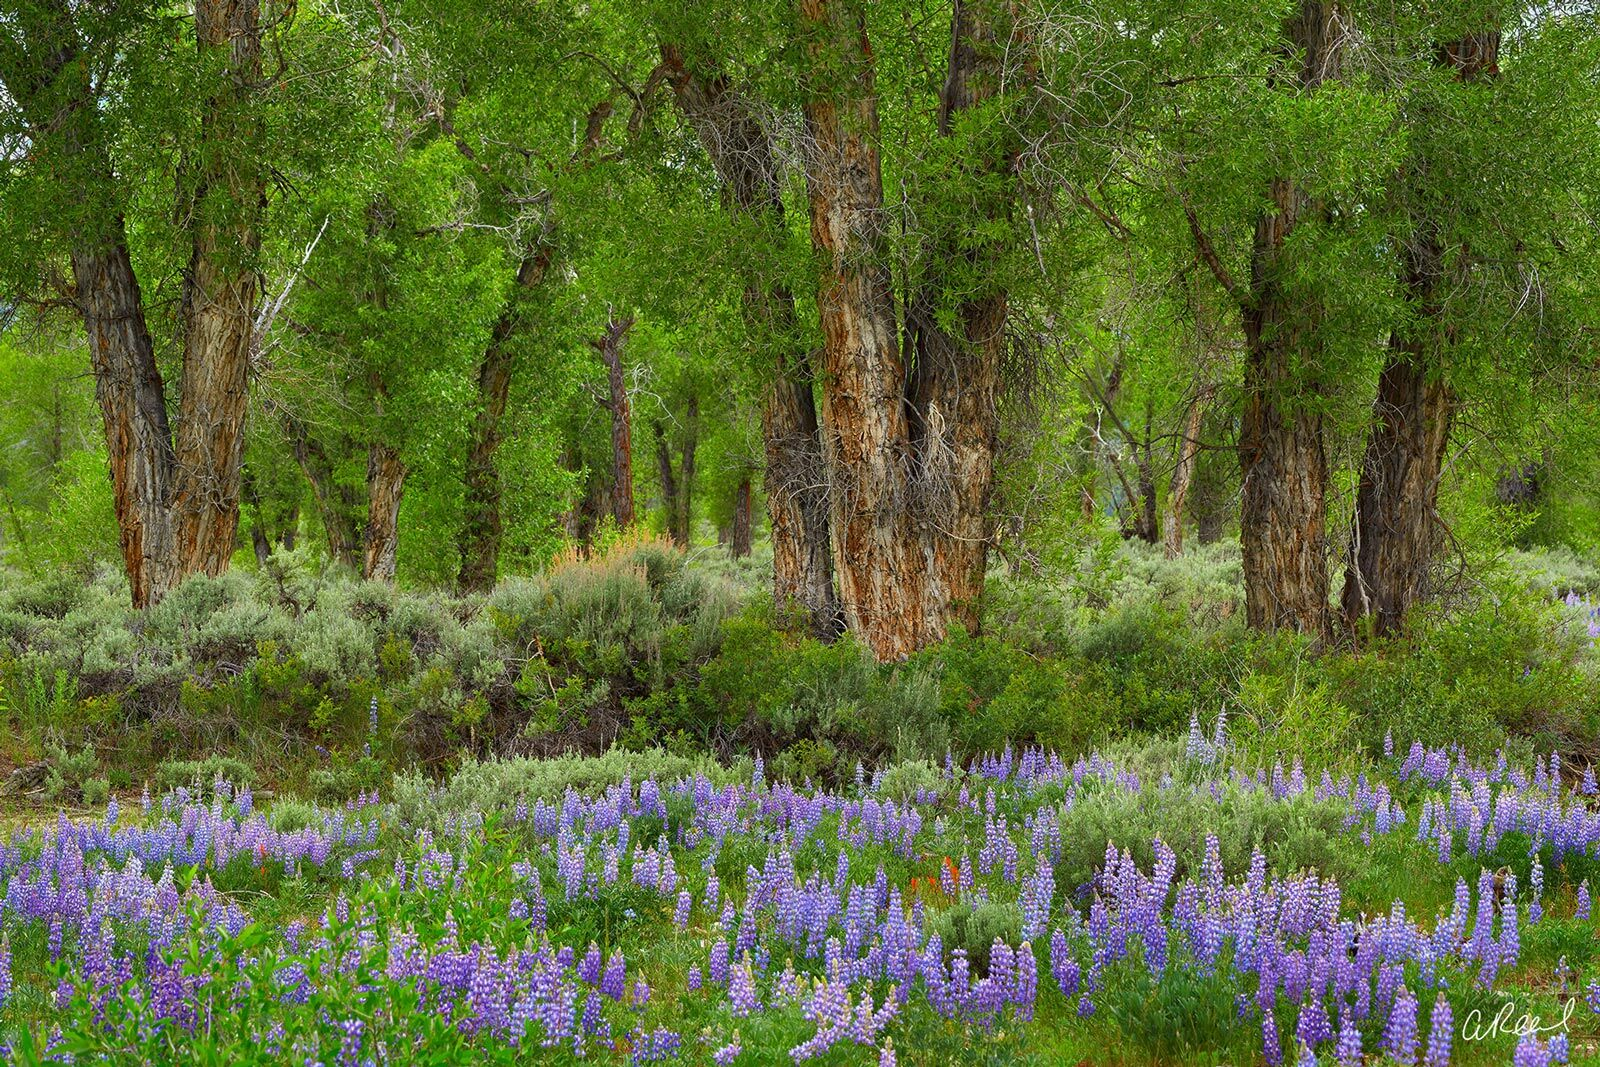 A field of trees with green leaves and a carpet of purple and blue flowers in the spring.